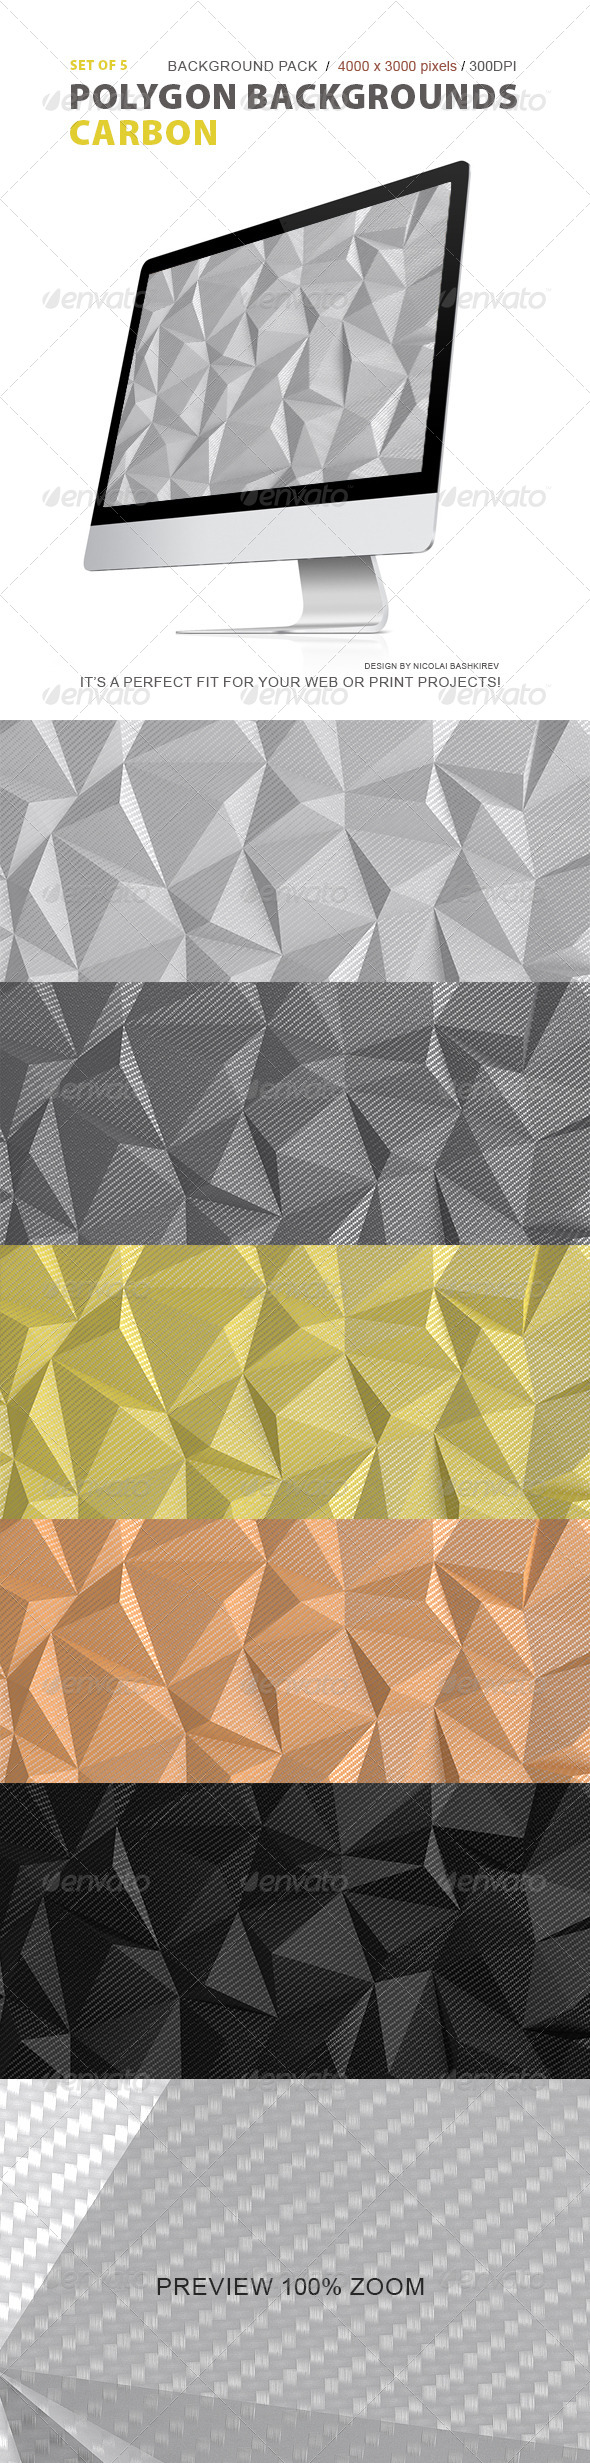 Polygon Backgrounds Carbon